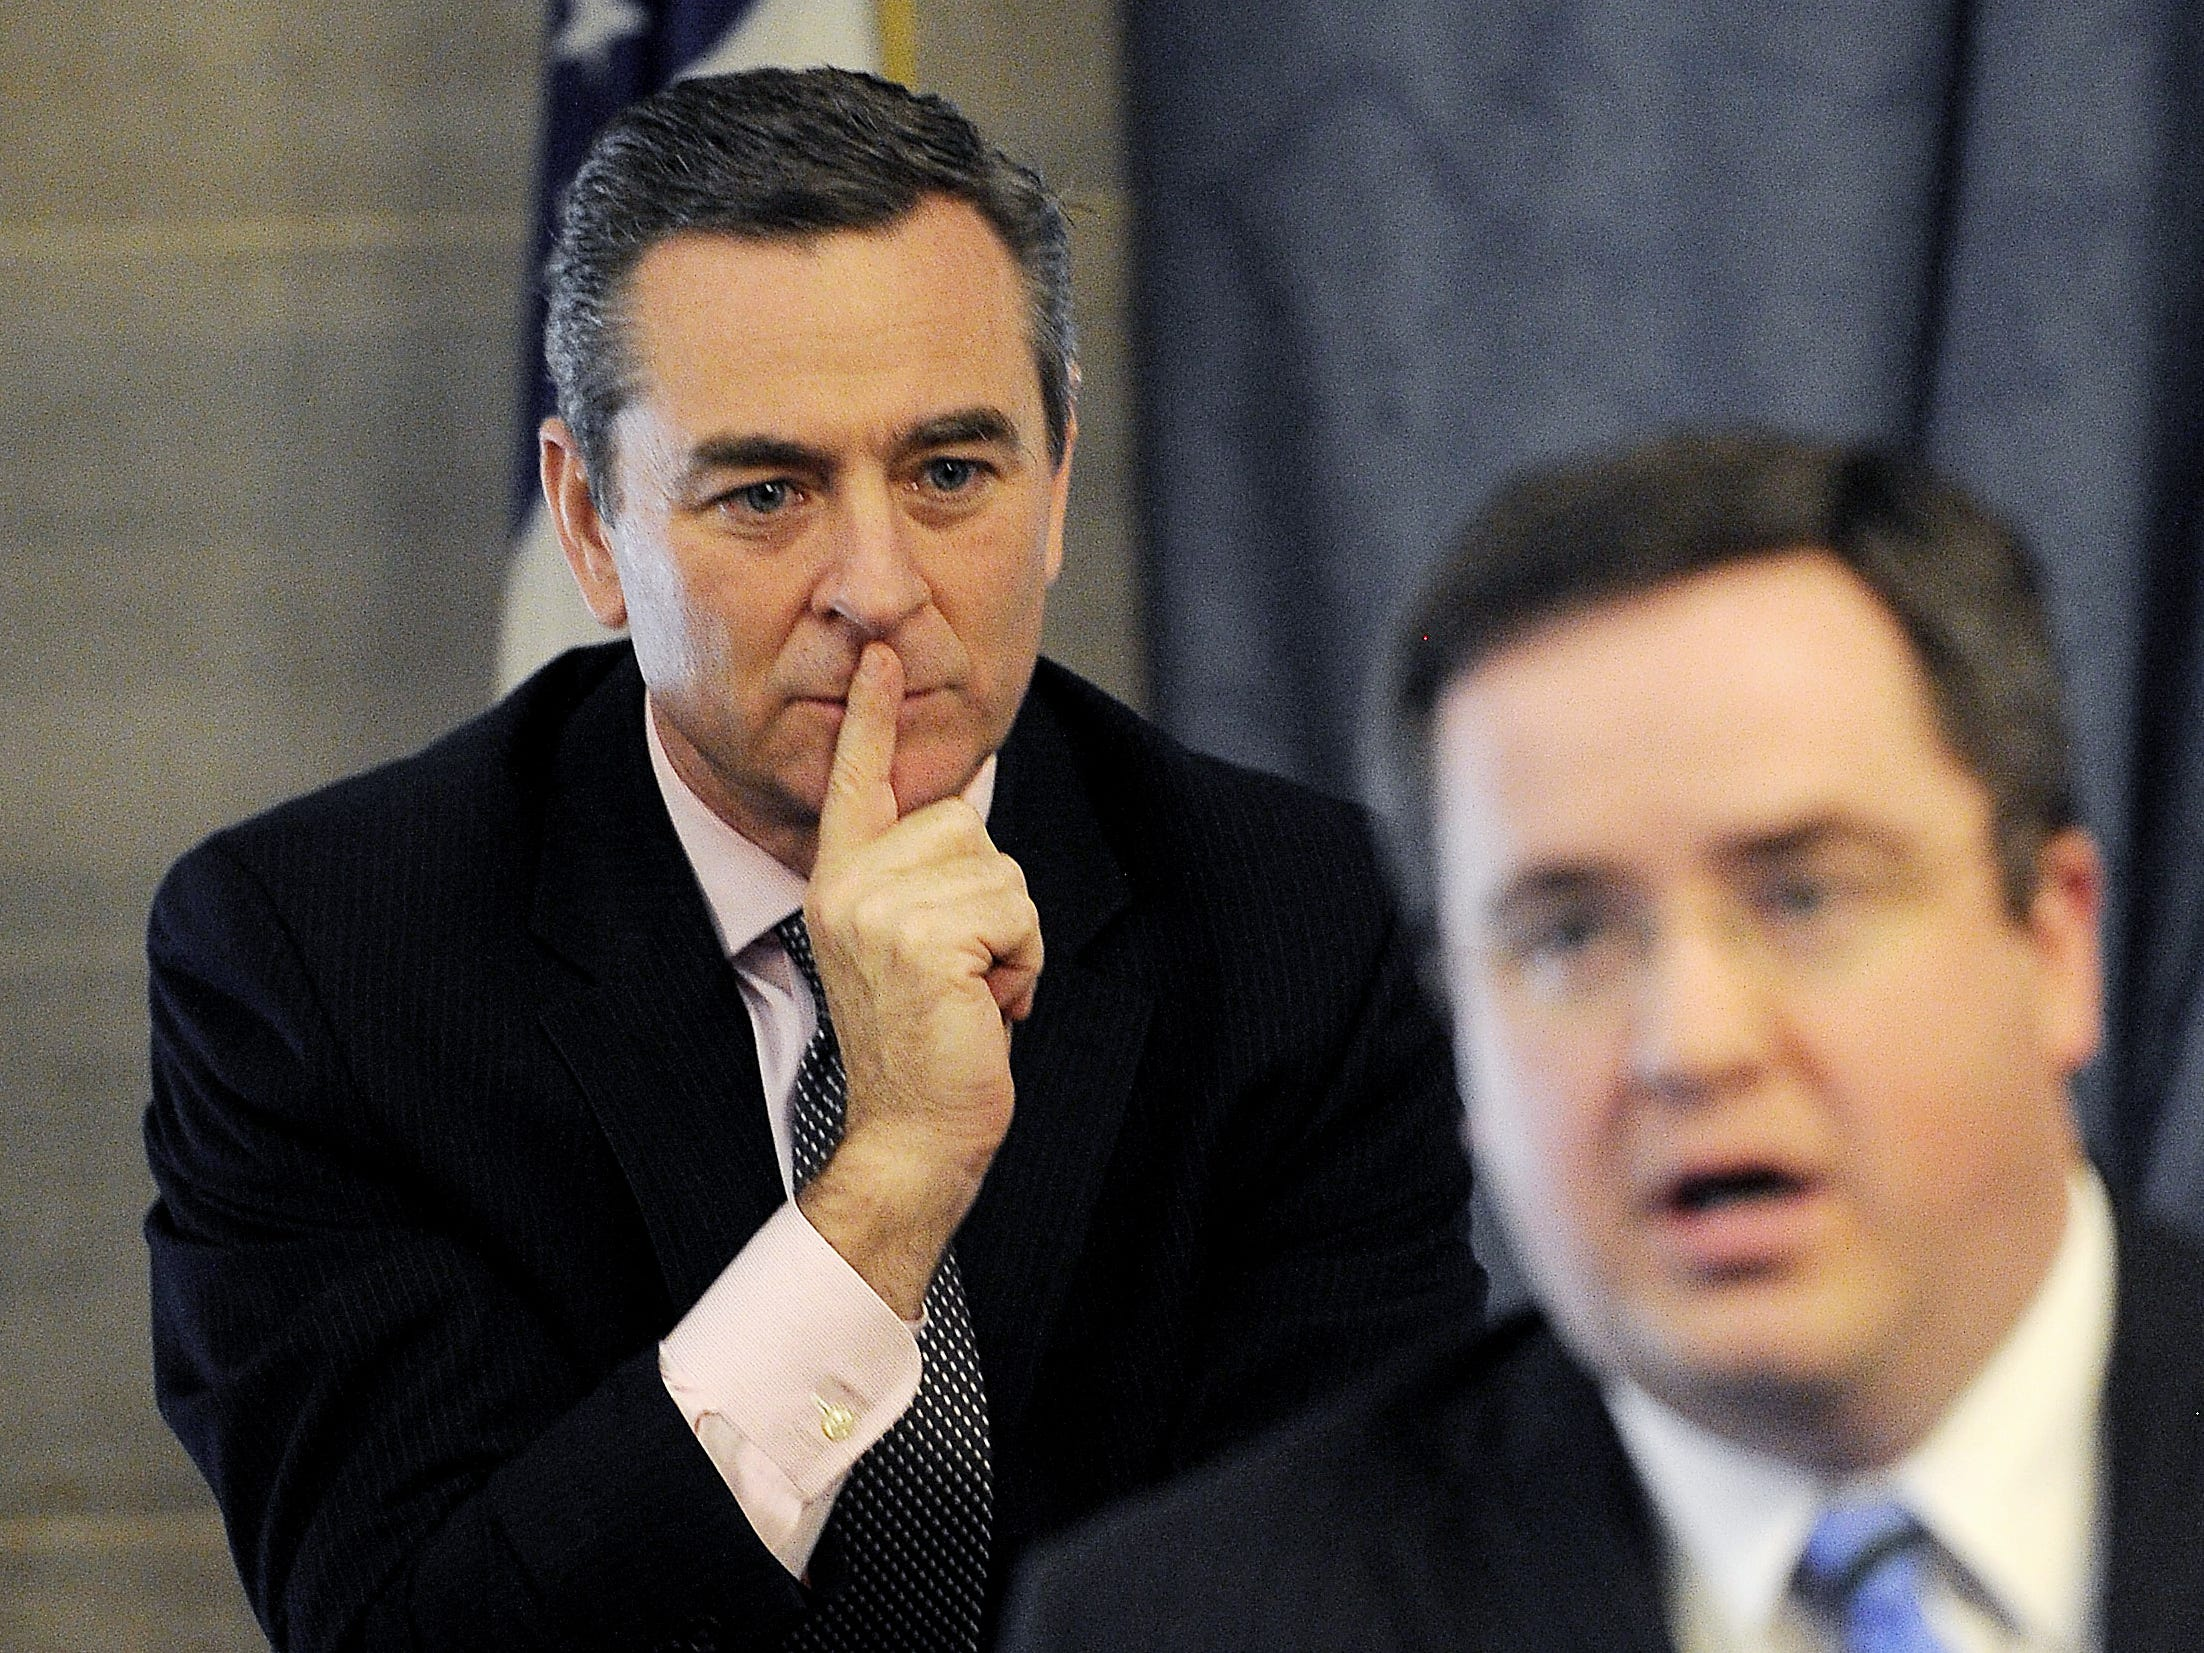 Rep. Glen Casada, back, listens as Rep. Matthew Hill talks during a caucus about an amendment to the budget bill that would pay state workers a bonus and a small raise April 10, 2014.